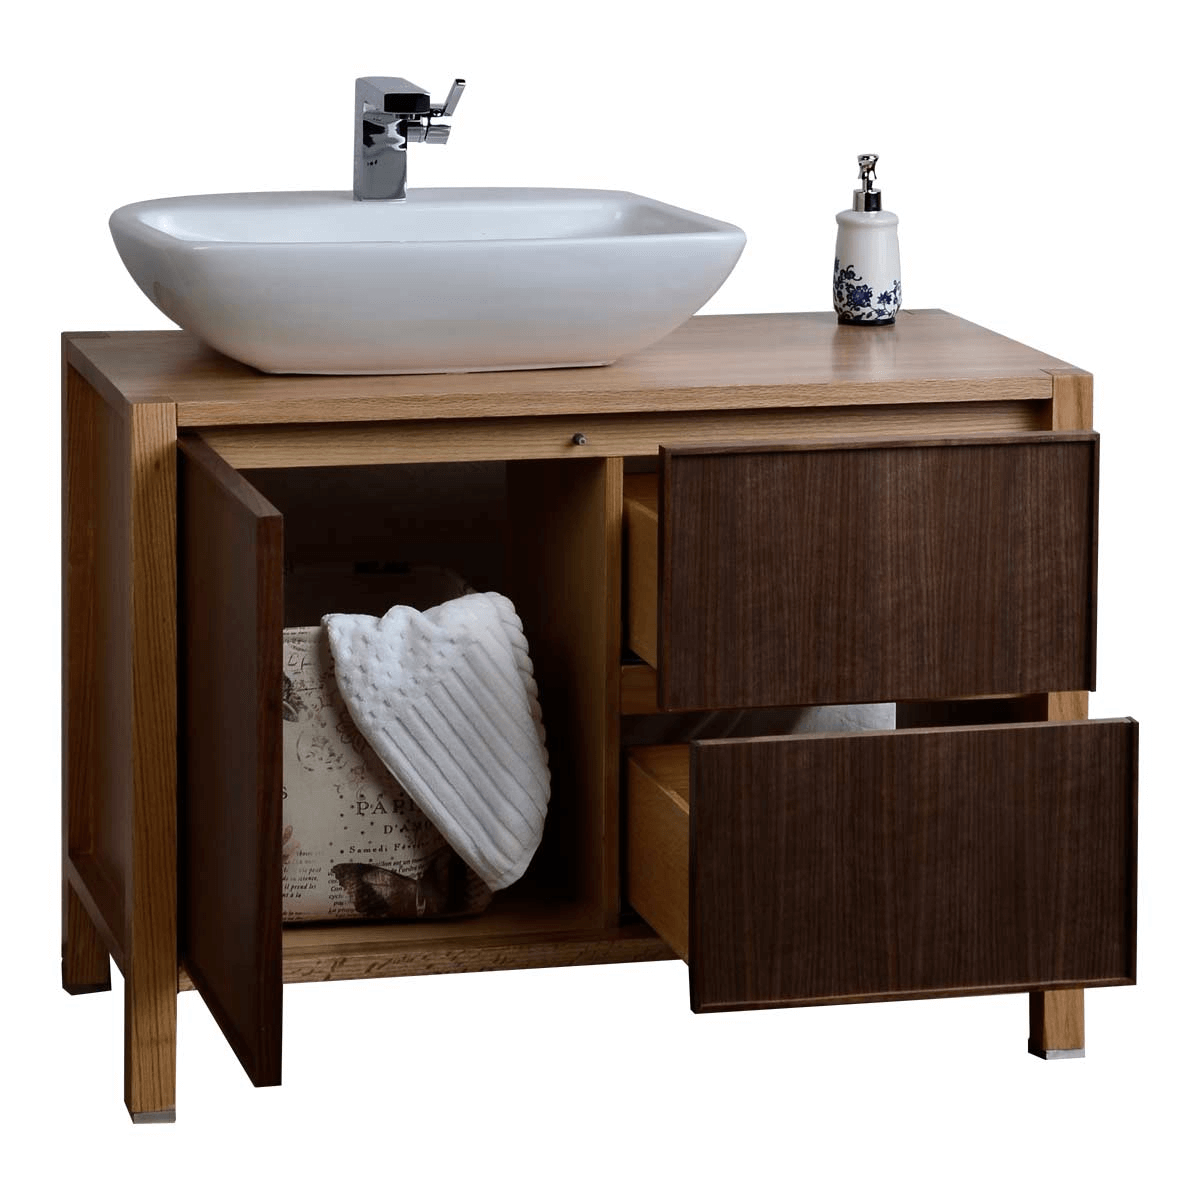 Buying tips on bathroom vanity with sink on left side types styles and materials Solid wood bathroom vanities cabinets